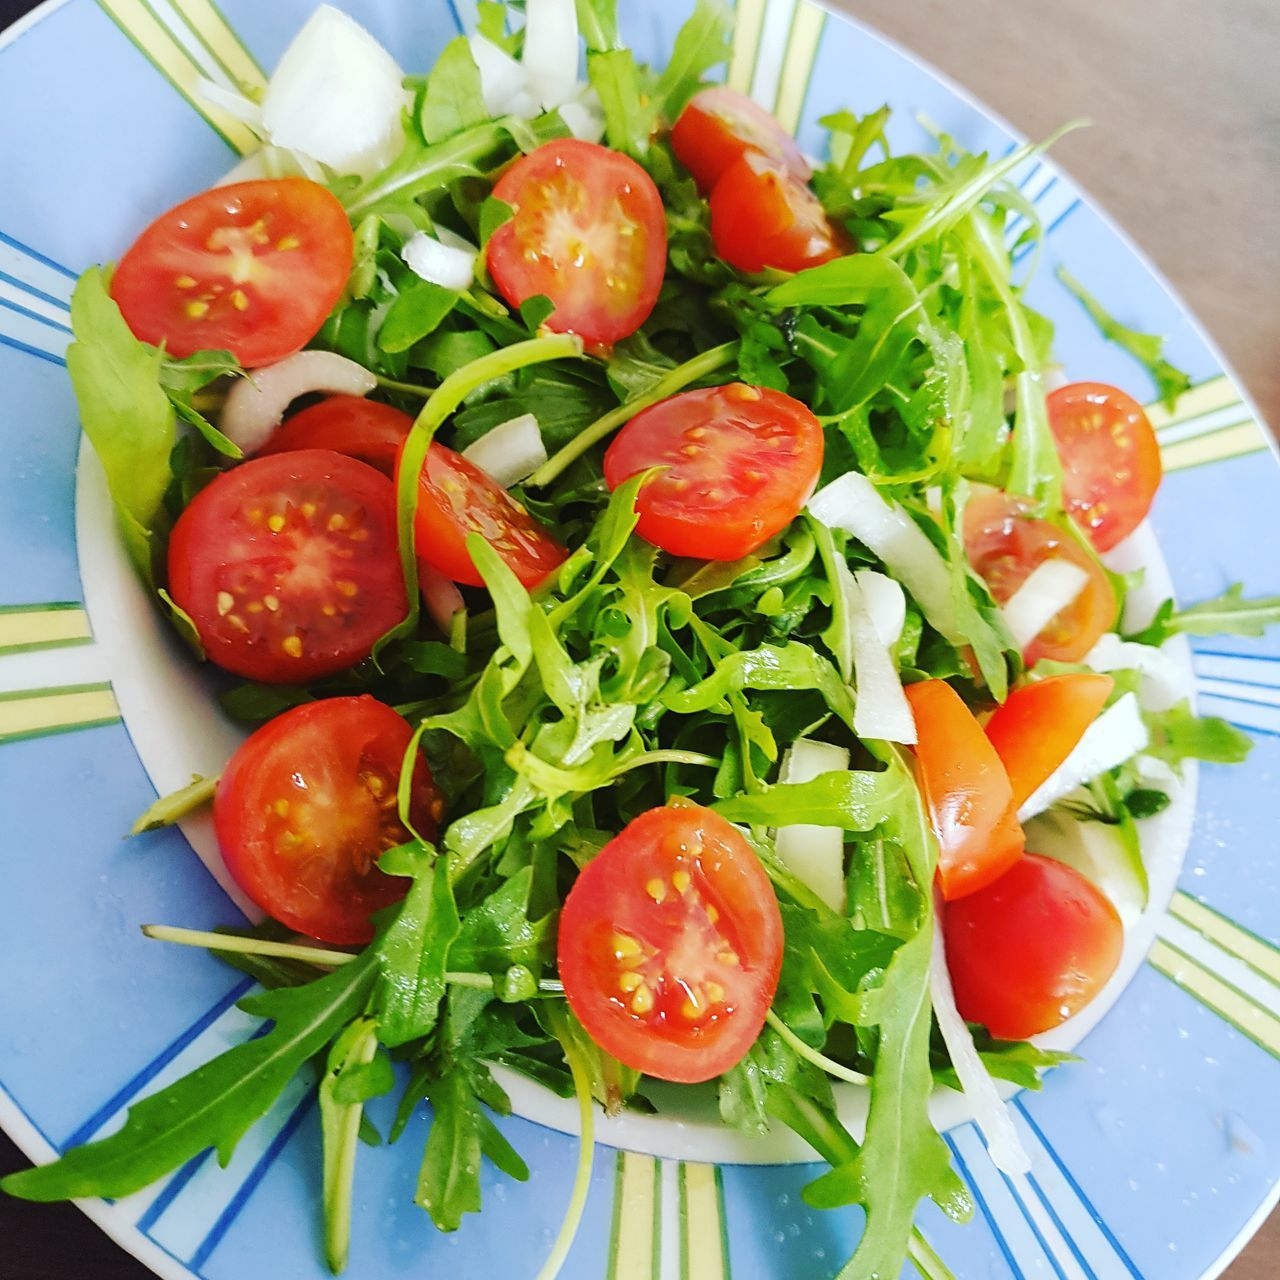 food and drink, food, healthy eating, freshness, tomato, salad, vegetable, no people, plate, high angle view, indoors, table, leaf, ready-to-eat, green color, red, close-up, day